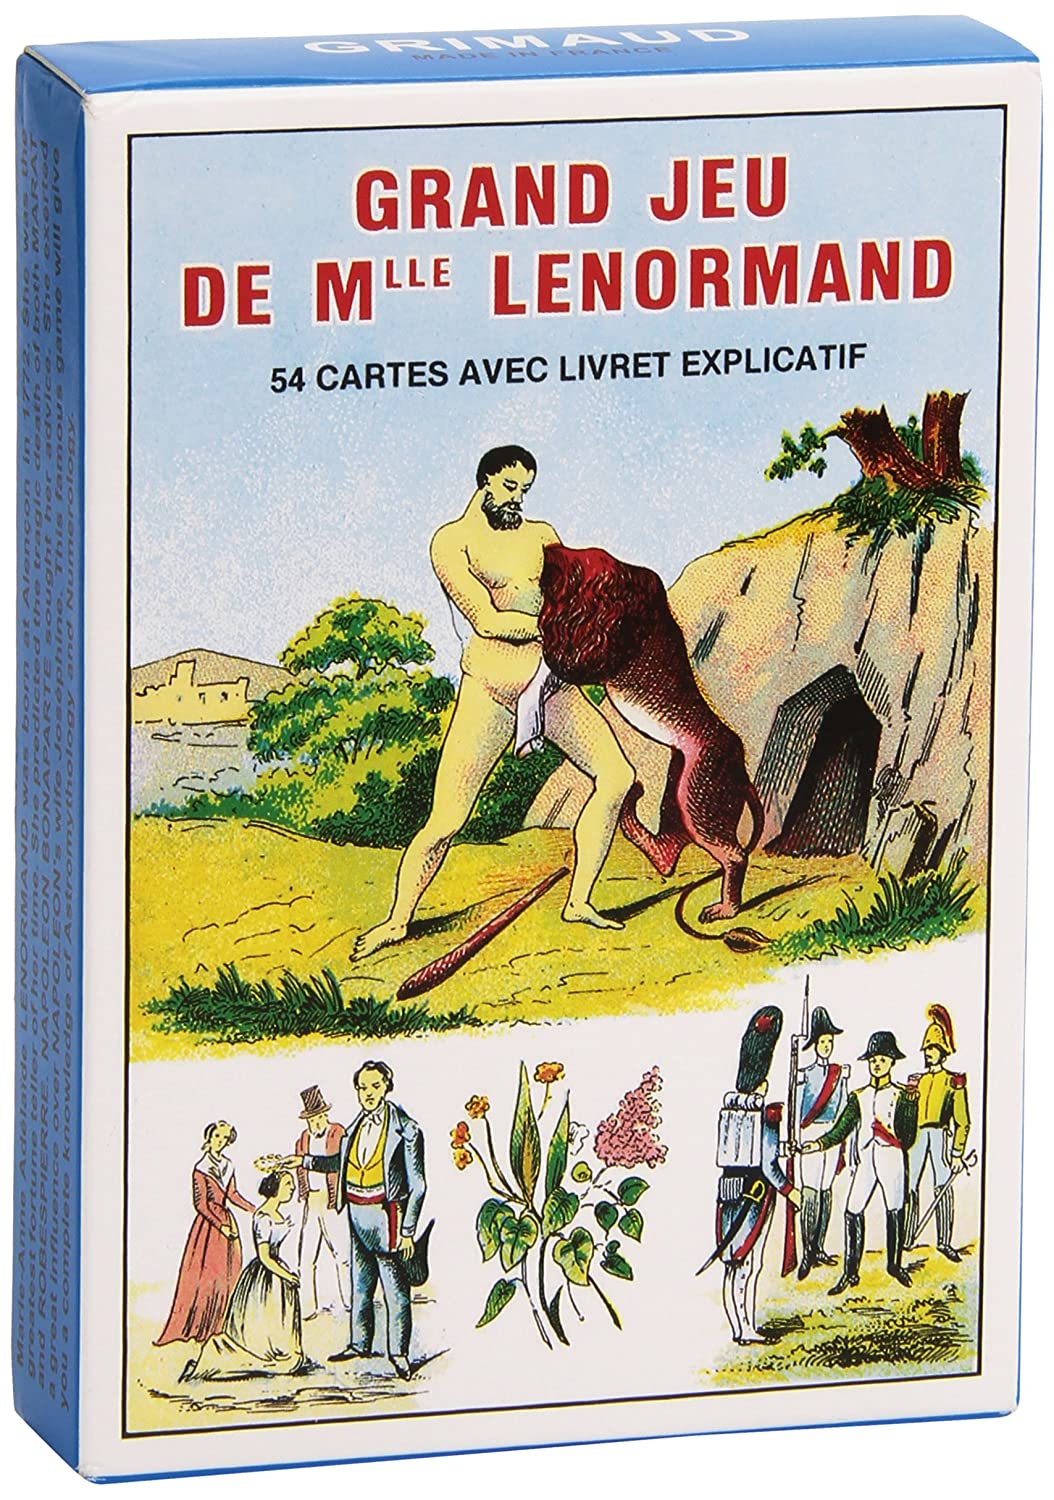 Grand Jeu de Mlle Lenormand by Grimaud